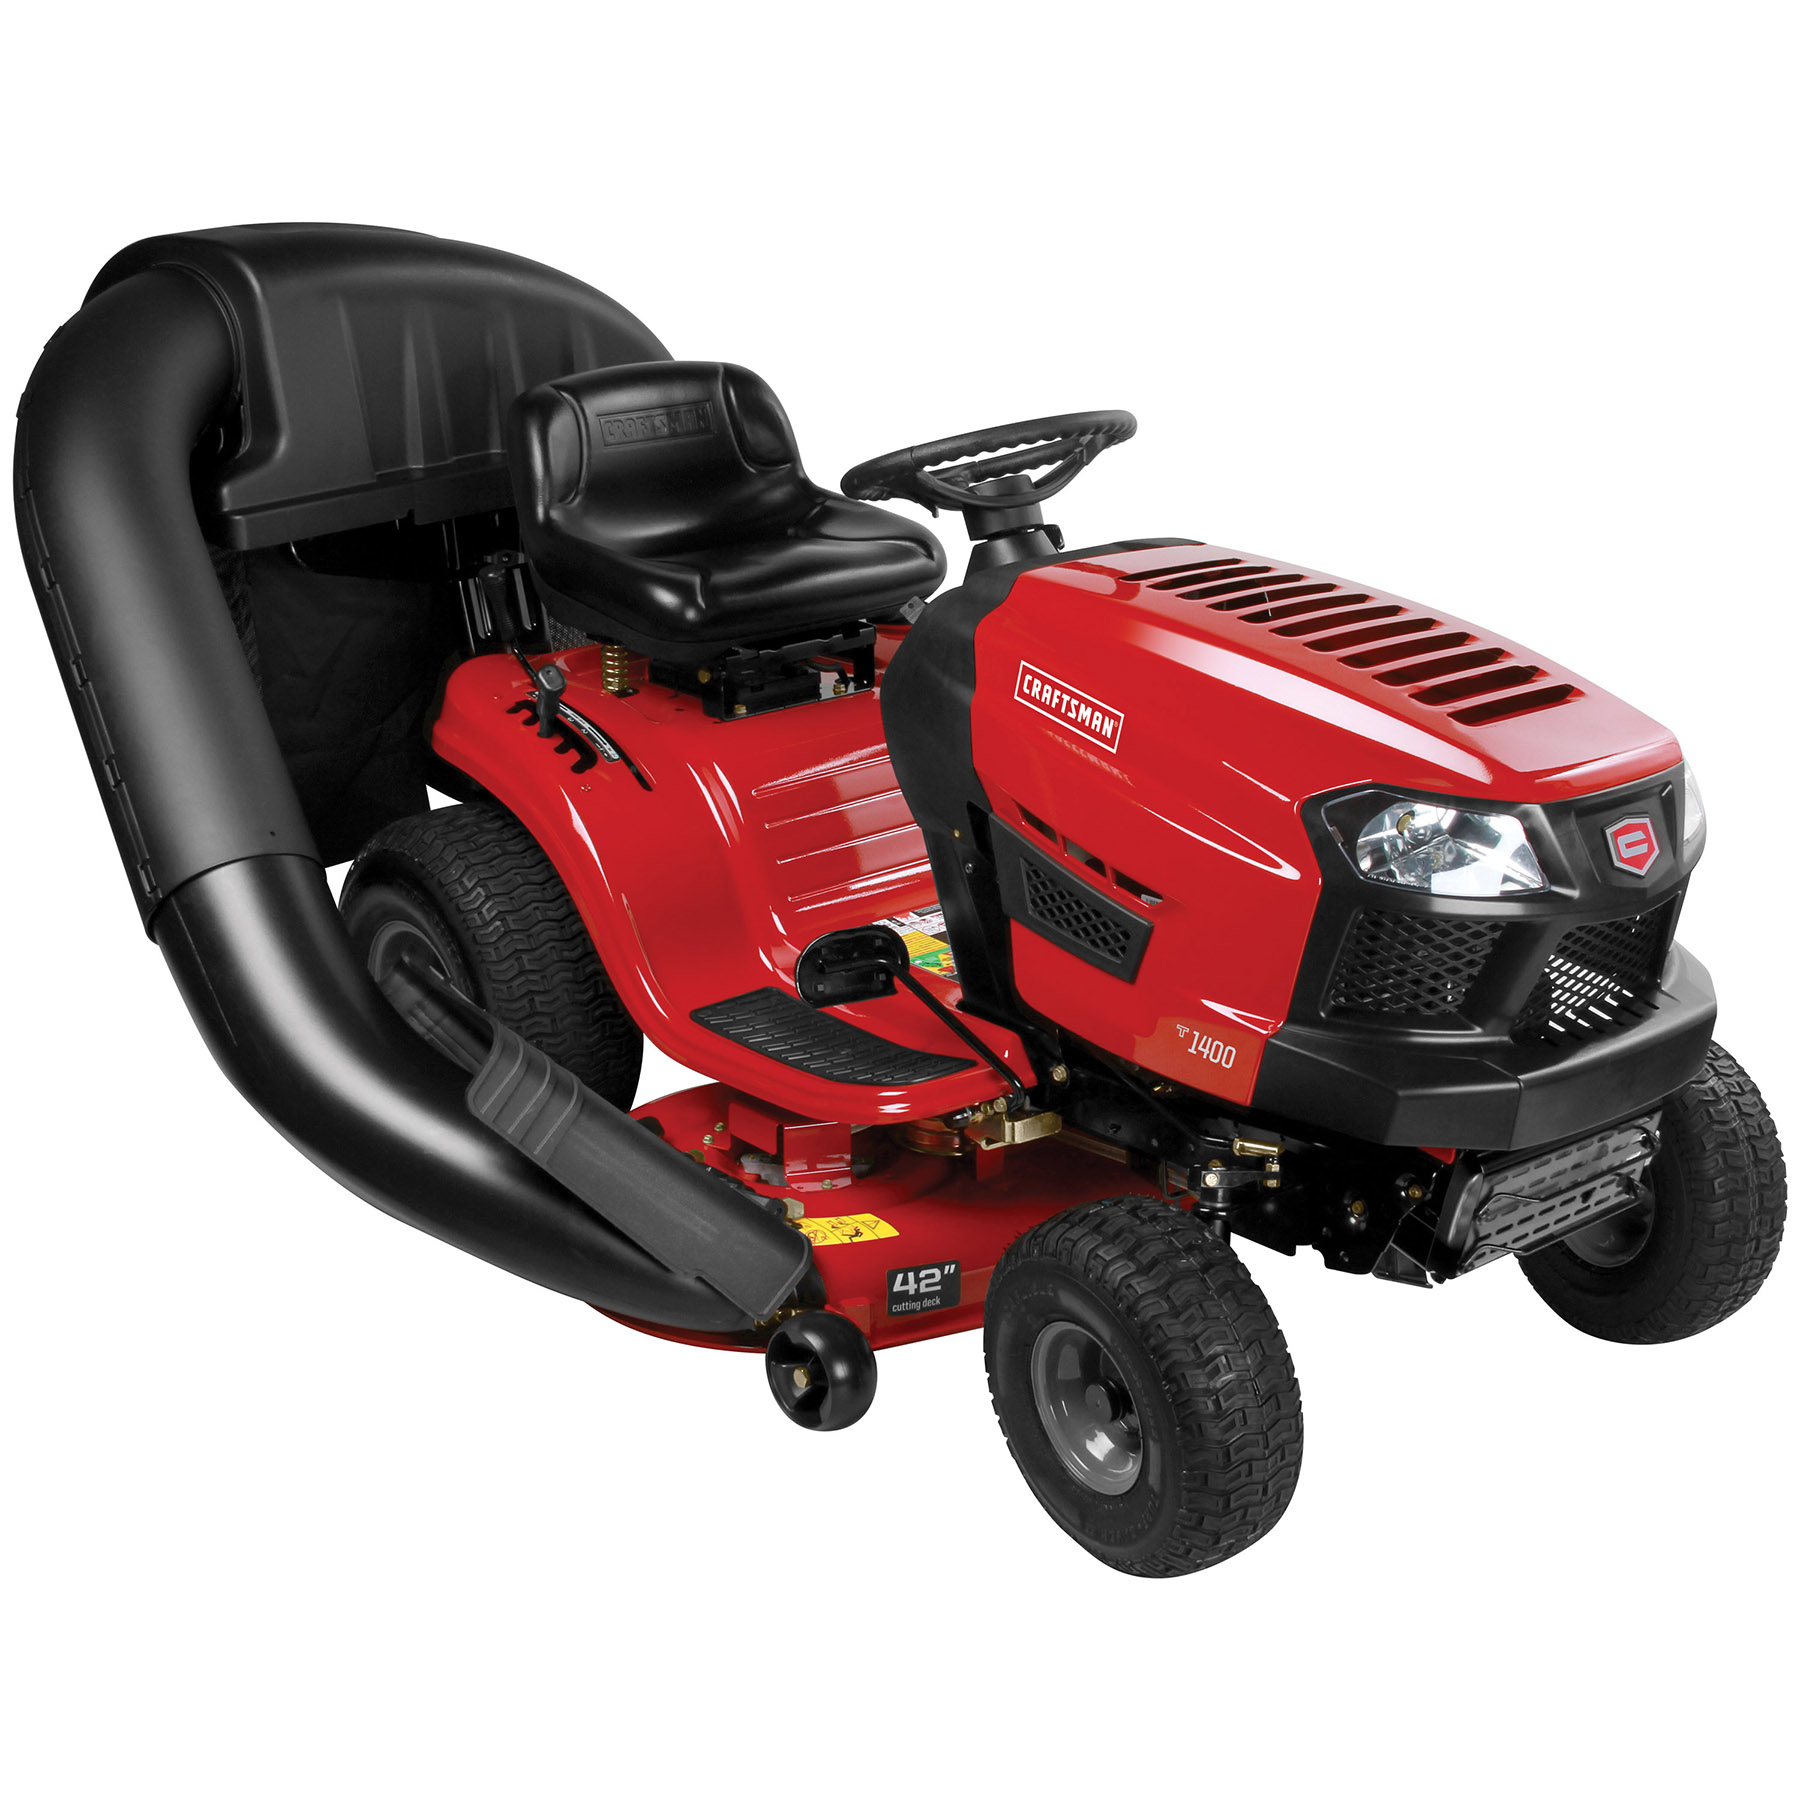 "Craftsman 42"" Auto 17.5 HP Briggs & Stratton Riding Mower"